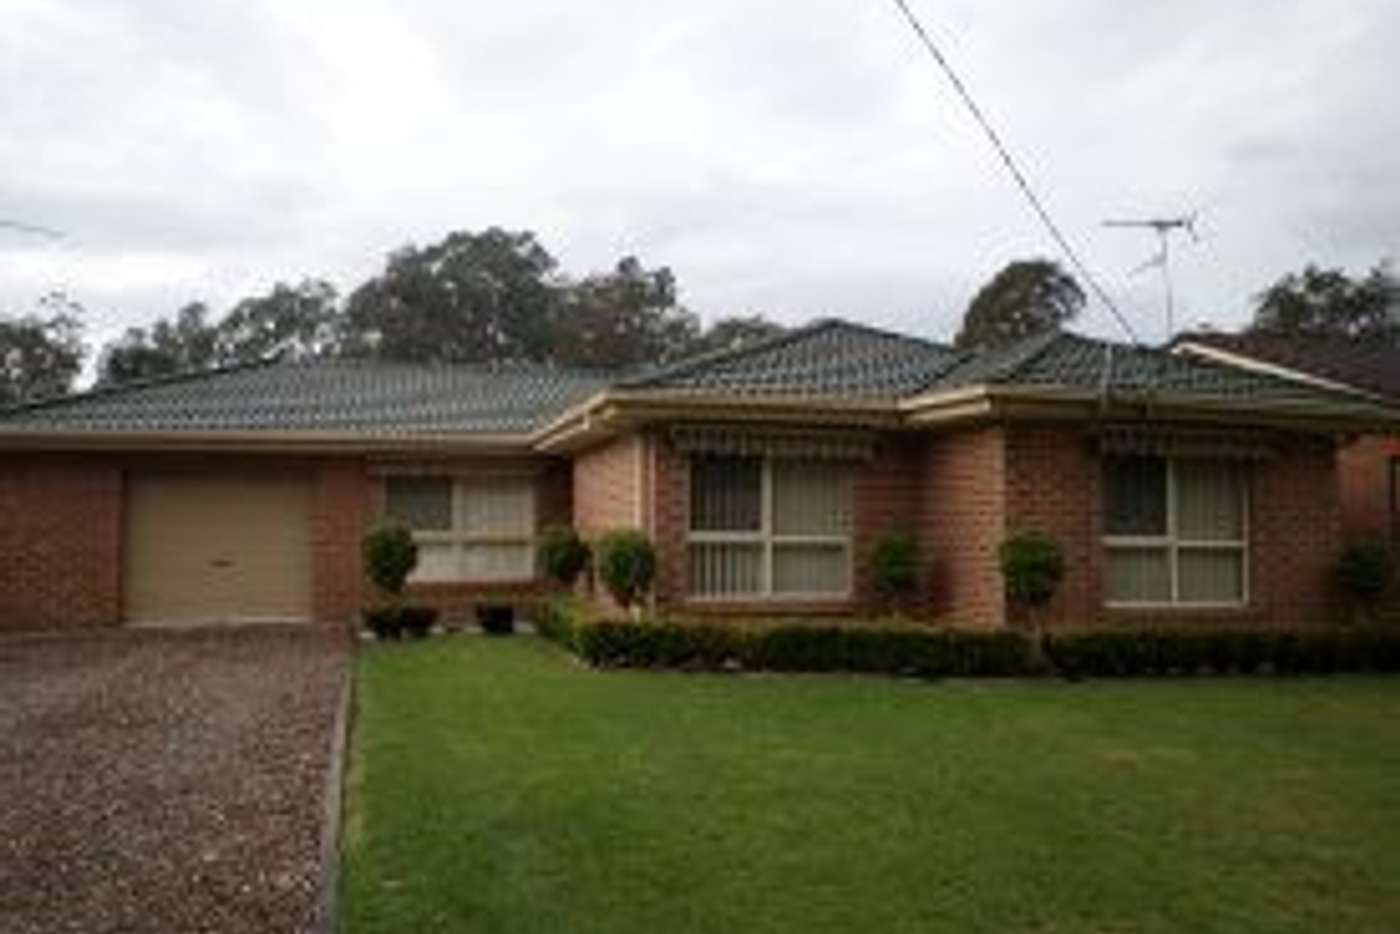 Main view of Homely house listing, 251 Thirlmere Way, Thirlmere NSW 2572